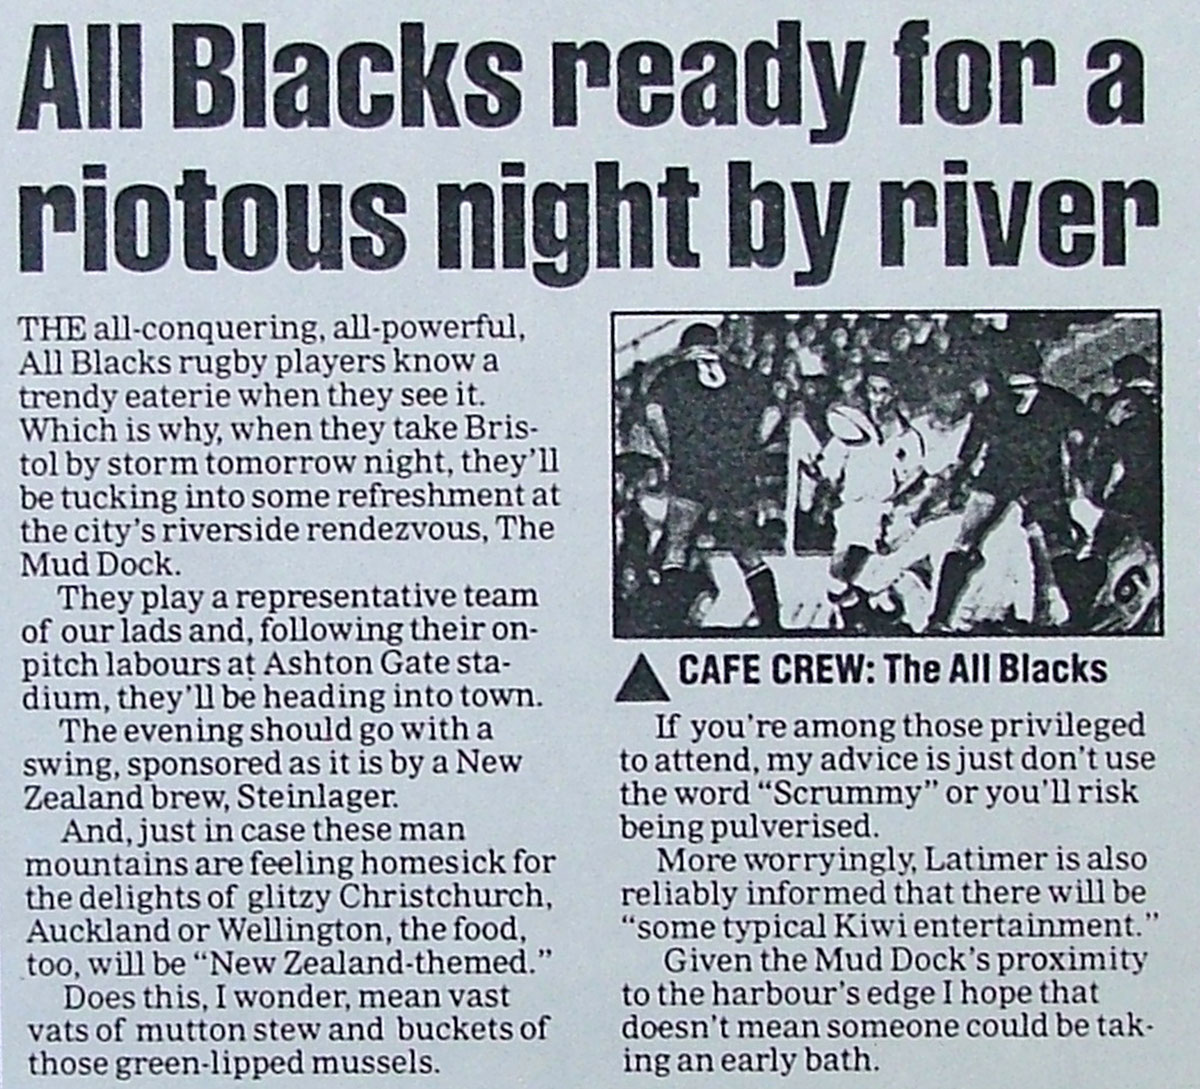 All Blacks article, 1997